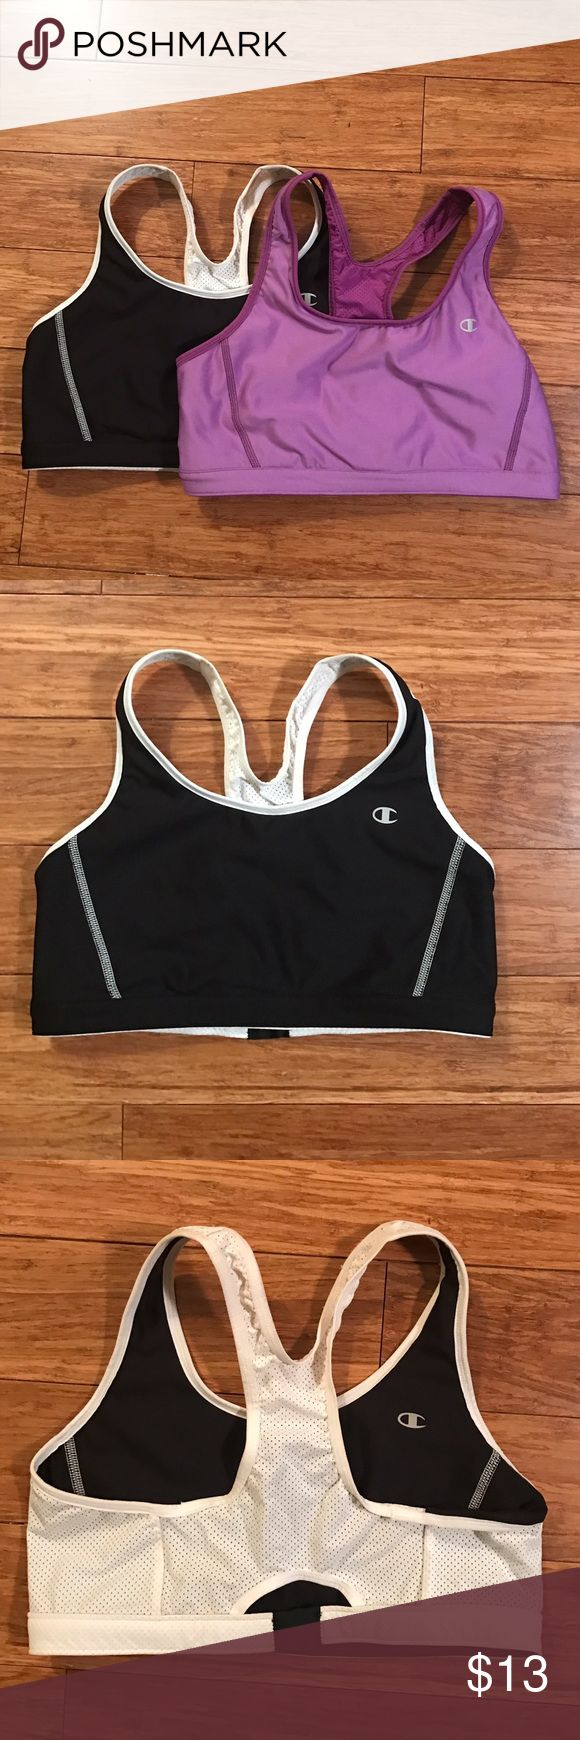 Reversible Champion Sports Bras Get two gorgeous and versatile Sports Bras for the price of one. Both reversible! Mesh detailed to allow for sweat while still providing great support. Black/white and Purple. Champion Intimates & Sleepwear Bras